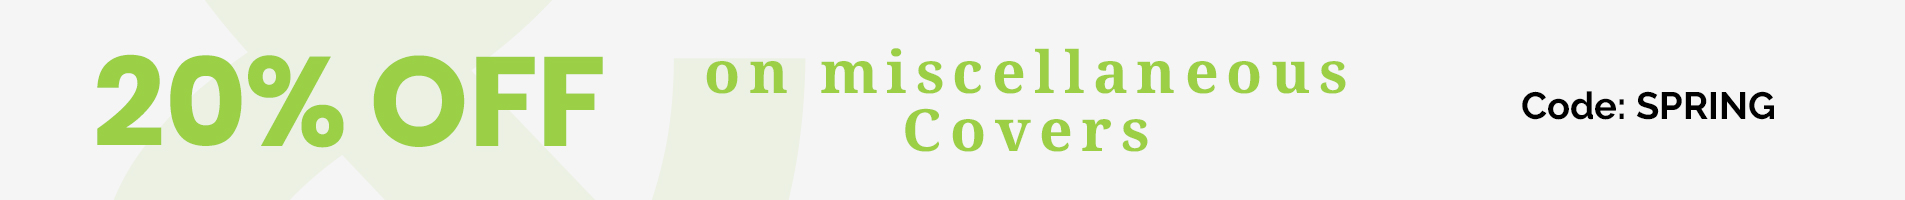 20% off on miscellaneous covers